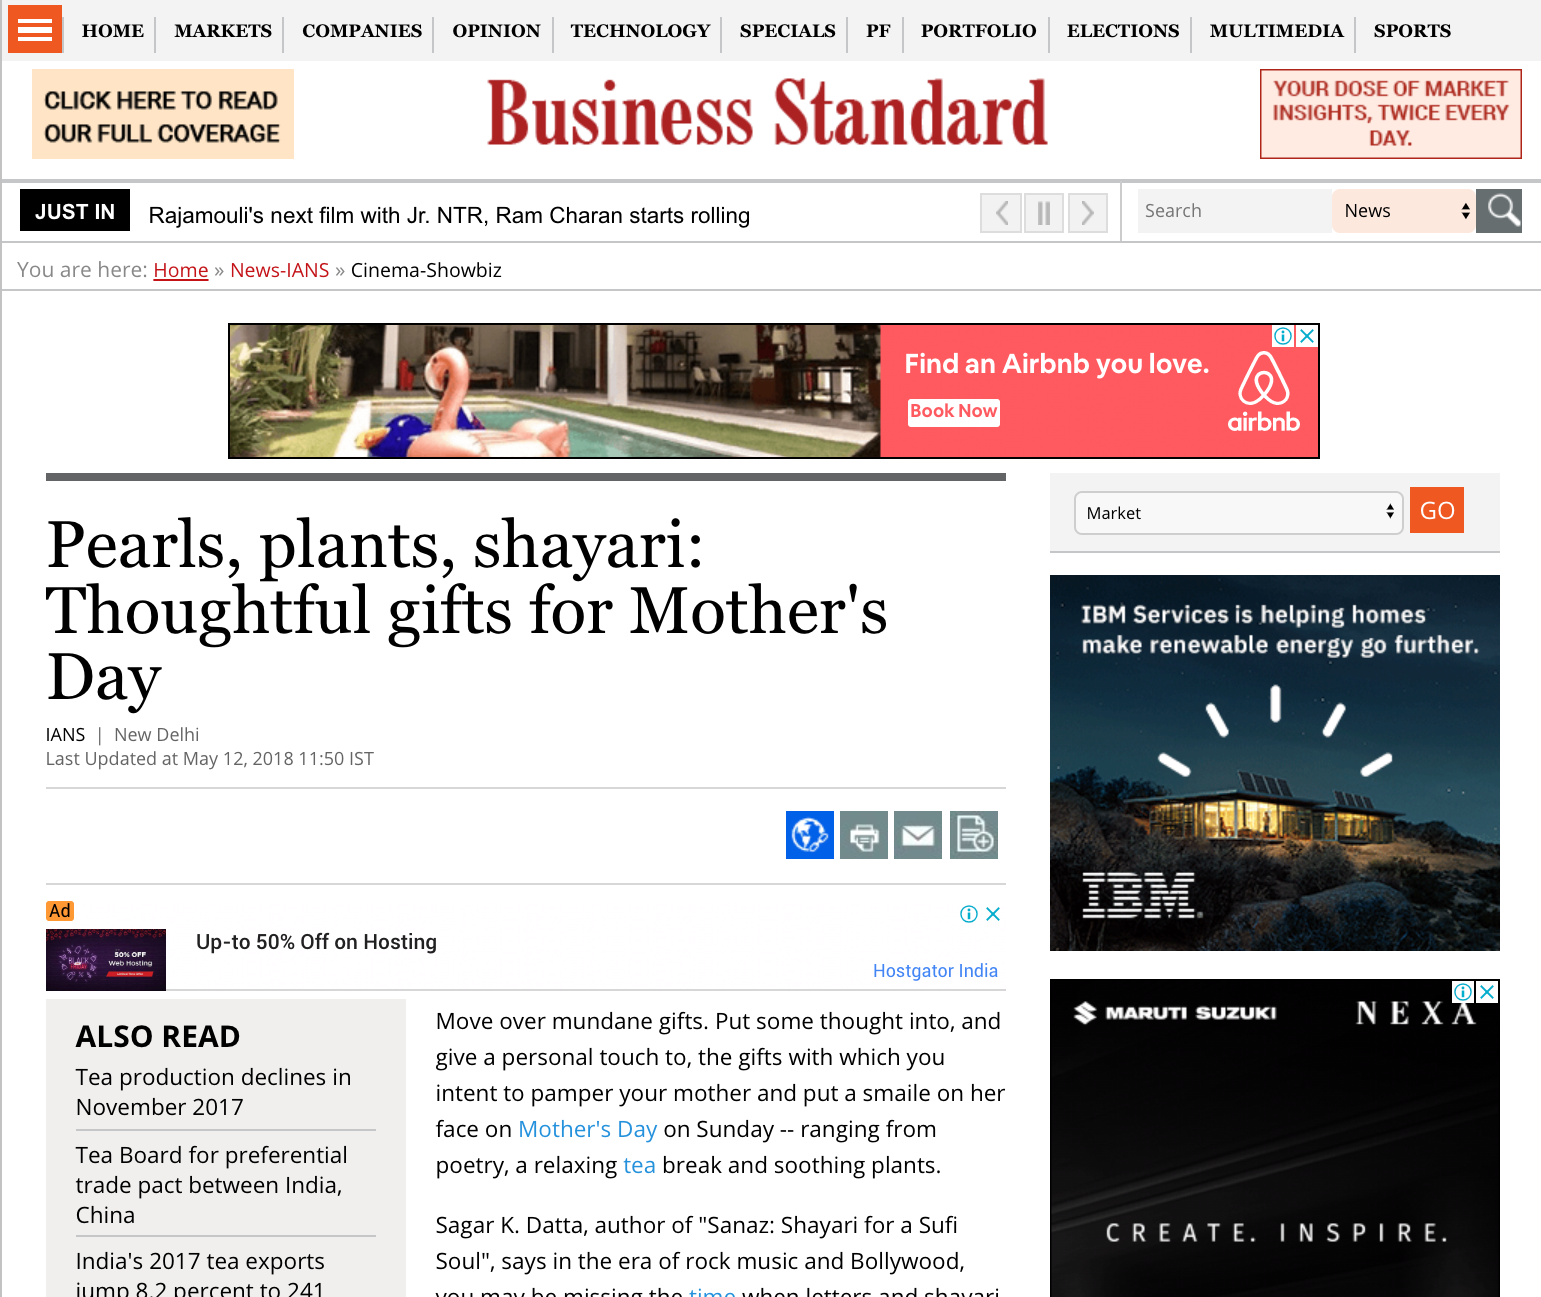 Business Standard | Pearls, plants, shayari: Thoughtful gifts for Mother's Day